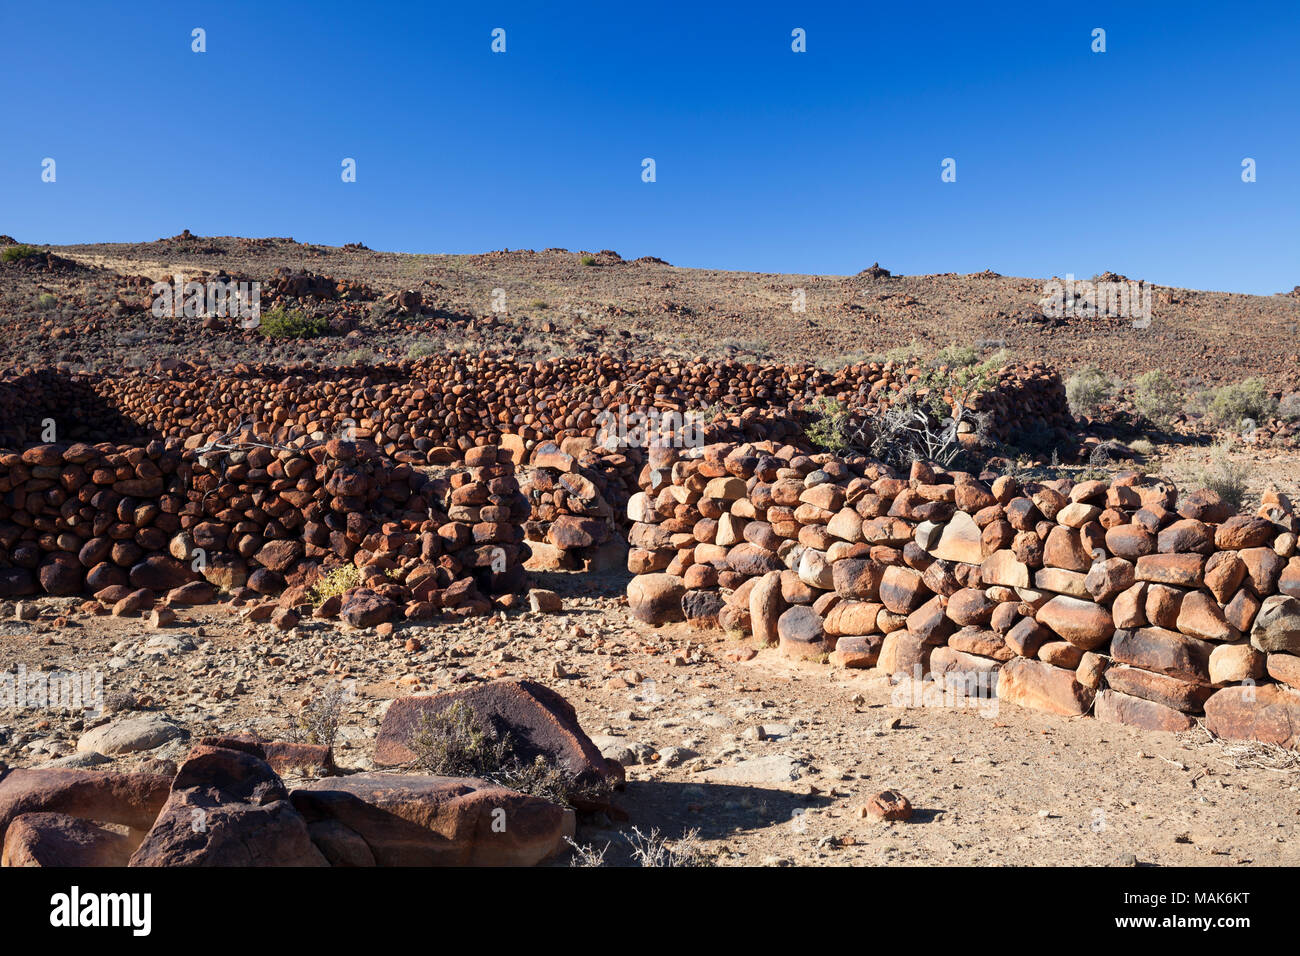 Stone walls of an old kraal or livestock pen in the Karoo, South Africa. - Stock Image